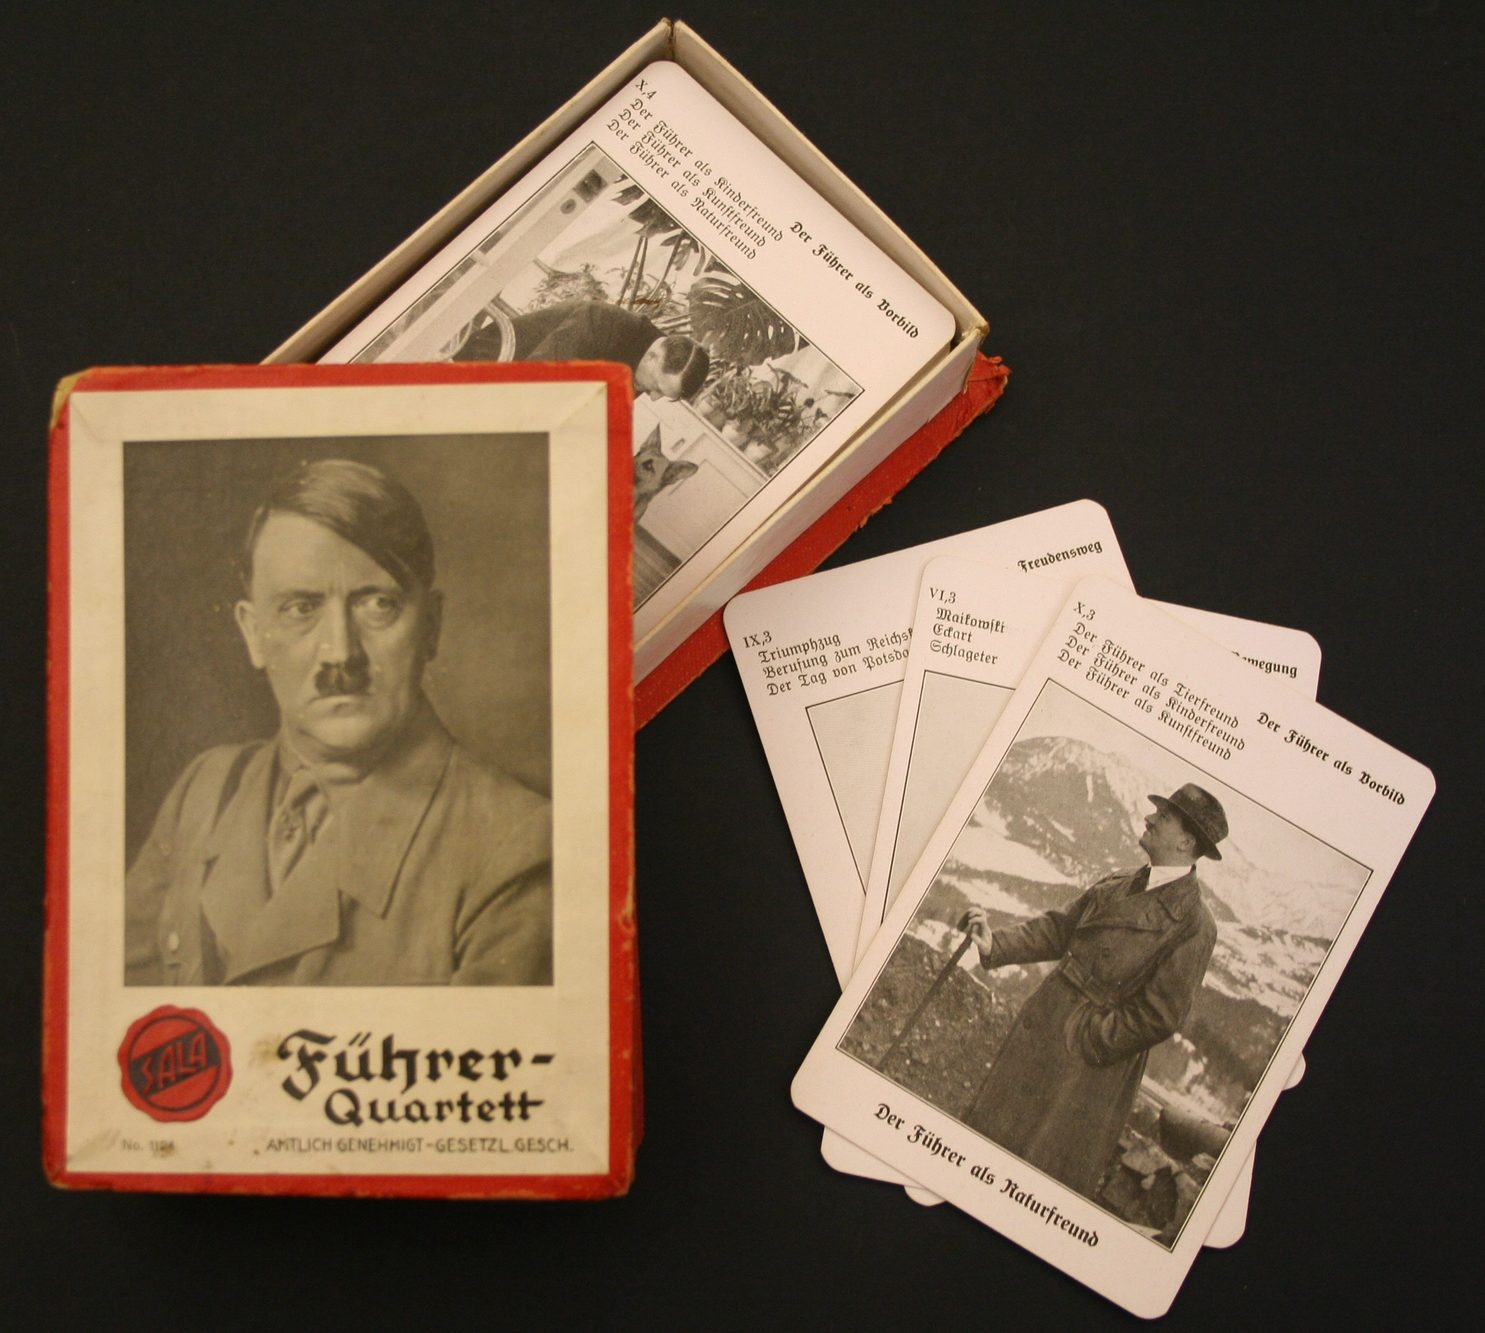 Führer Quartett Spiel: card game featuring different members of the Nazi party